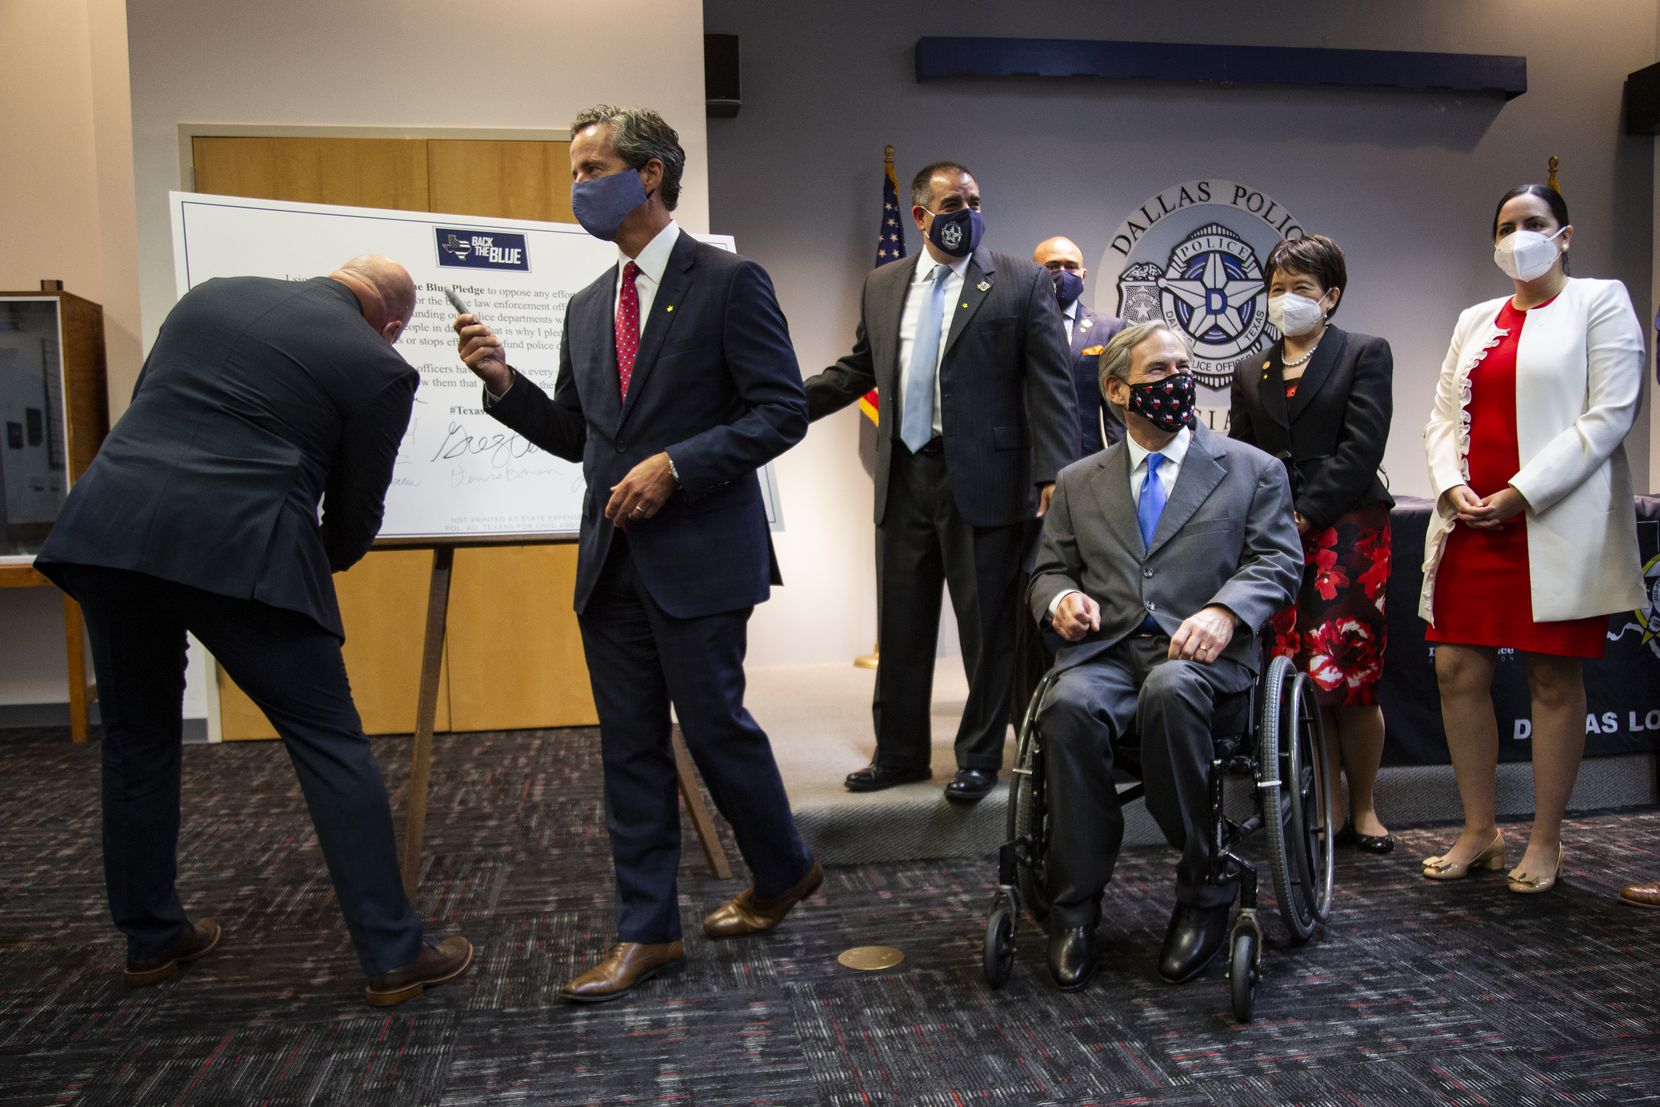 Governor Greg Abbott waits as local elected officials sign a Back the Blue Pledge after a press conference to announce legislative proposals related to public safety at the Dallas Police Association in Dallas Sept. Thursday, 24, 2020 . (Juan Figueroa/ The Dallas Morning News)